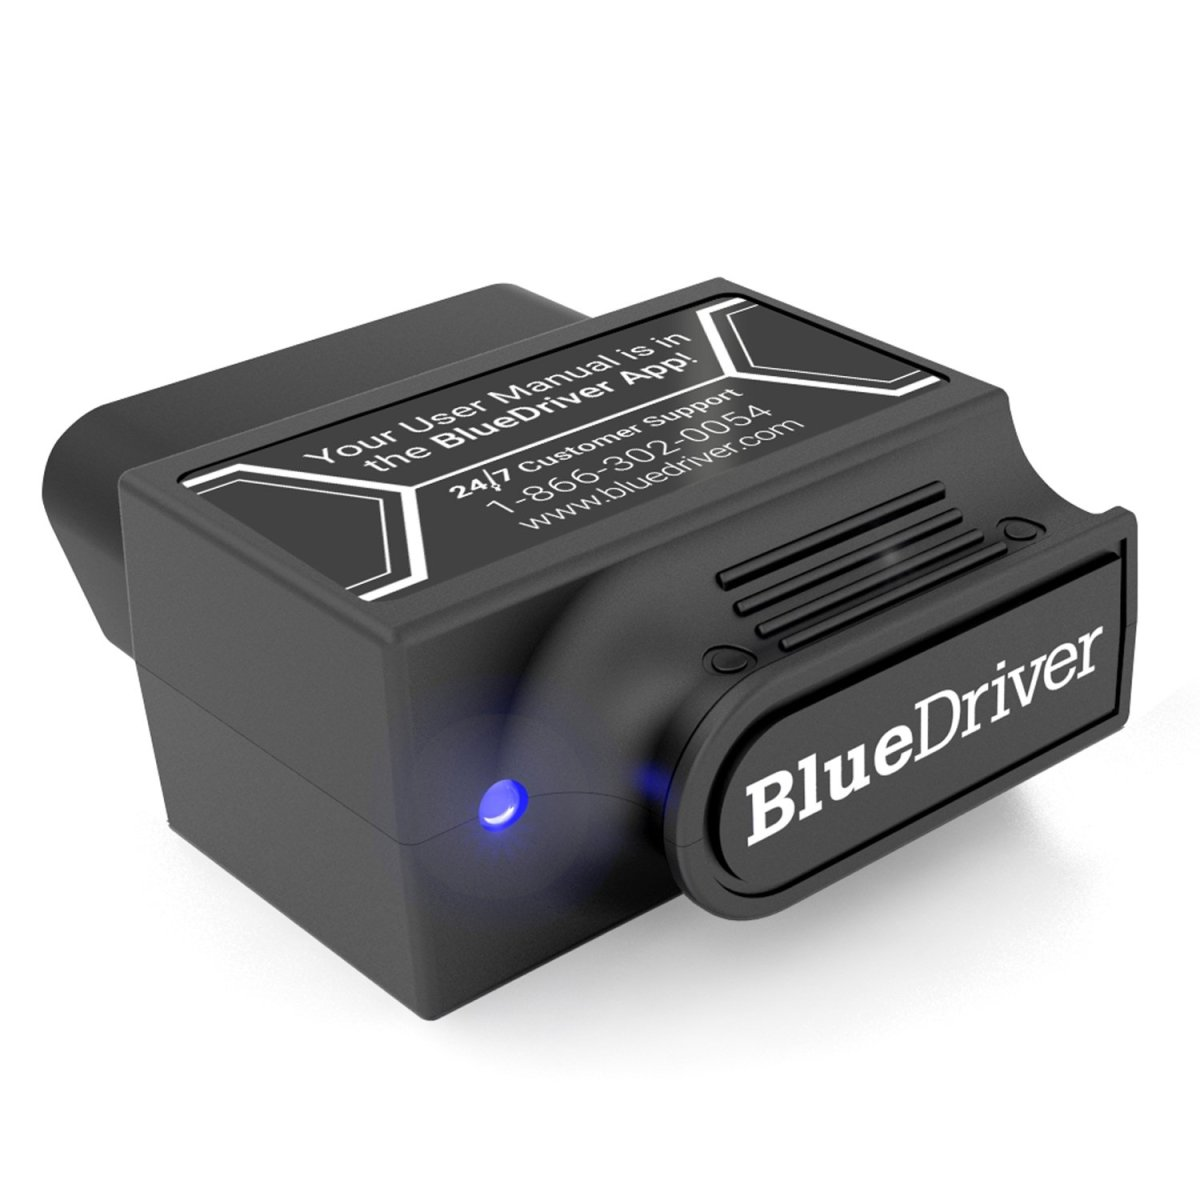 Best Car Diagnostic Scanners Reviews BlueDriver LSB2 Bluetooth Pro OBDII Scan Tool for iPhone & Android